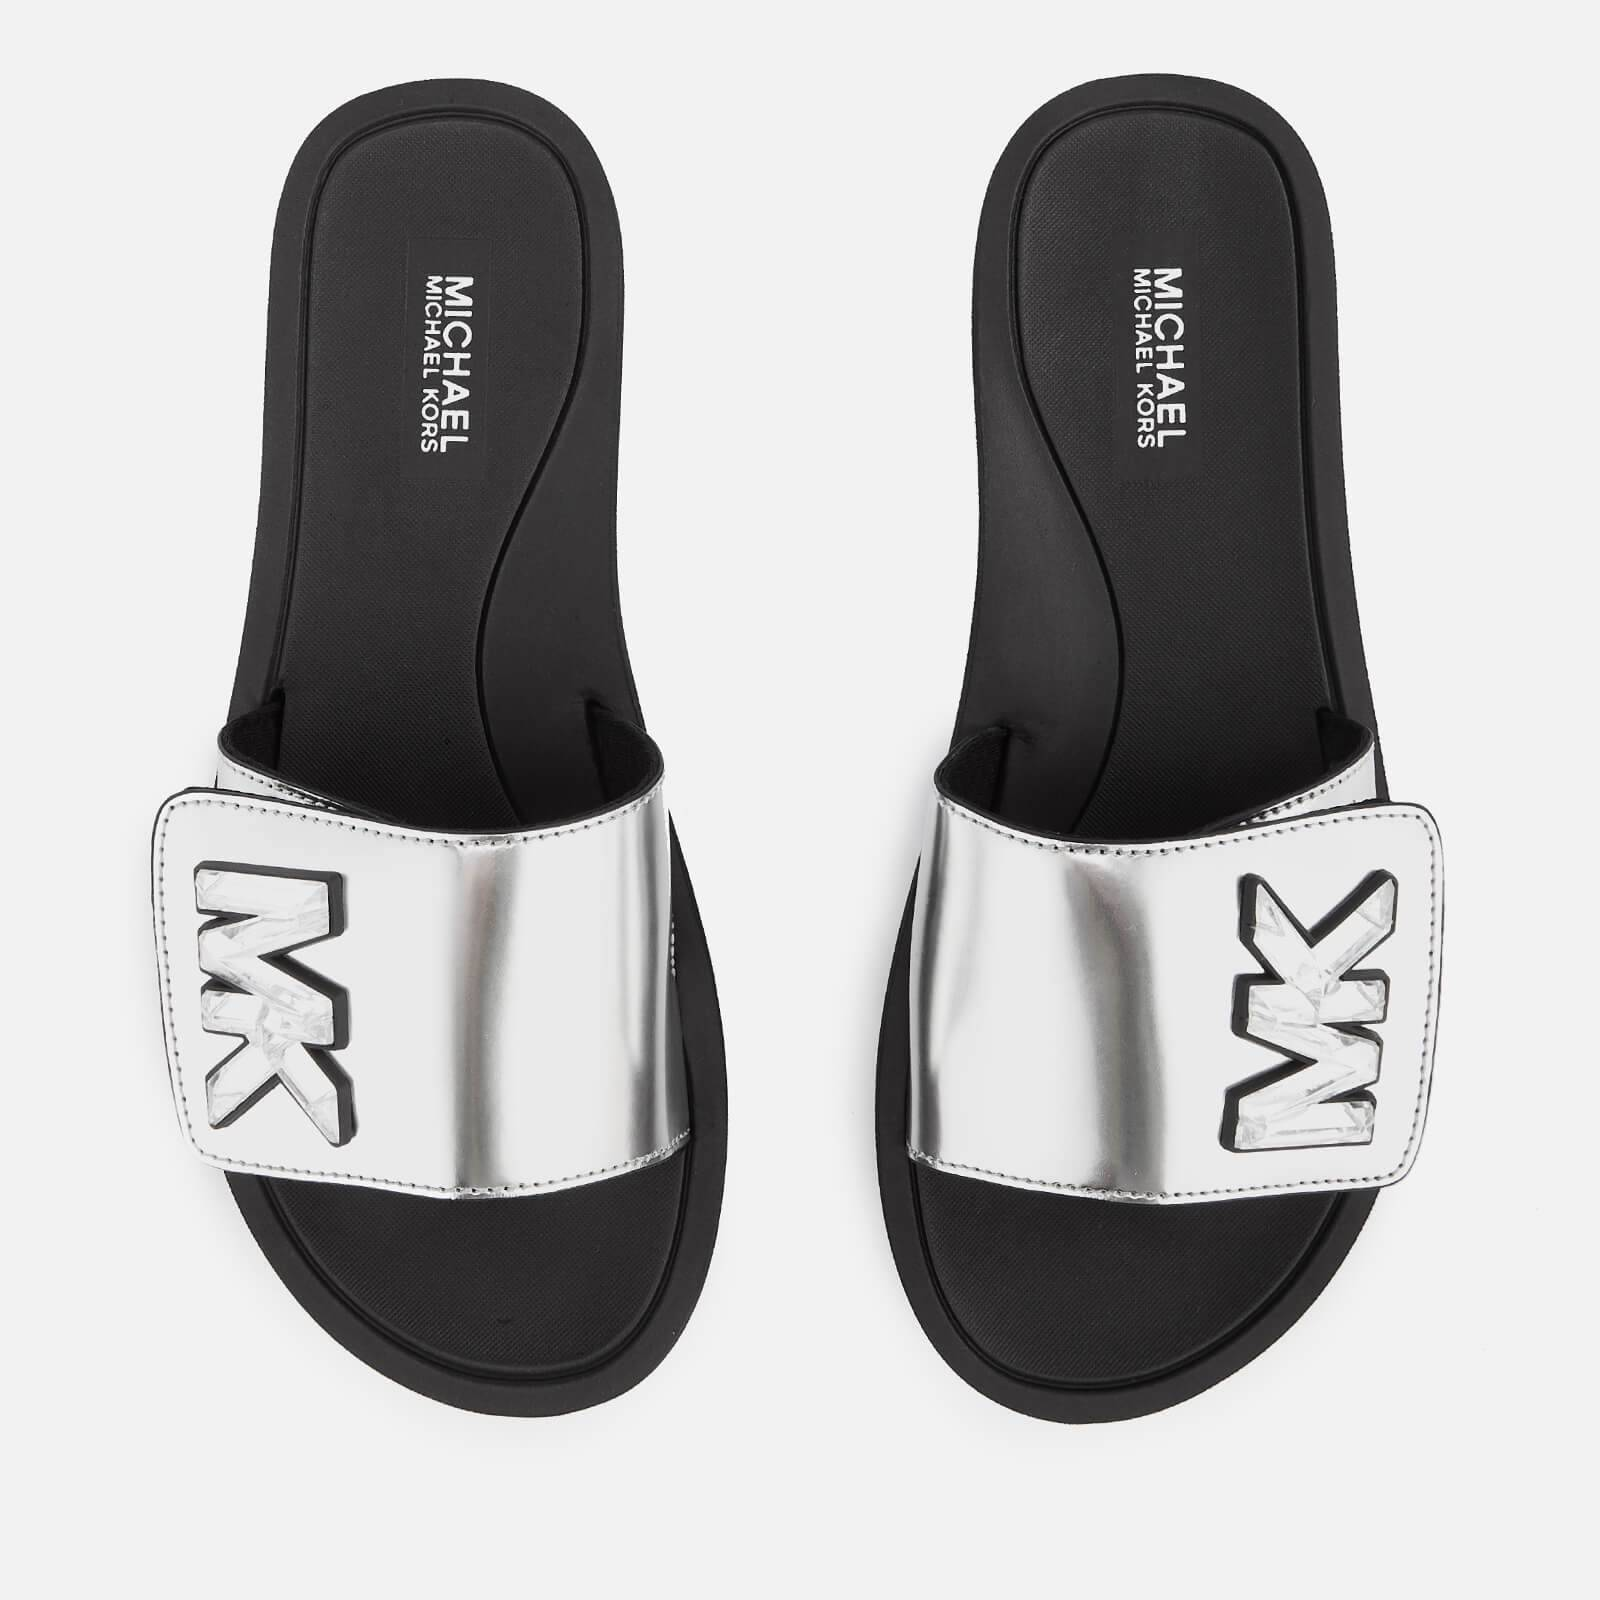 MICHAEL MICHAEL KORS Women's MK Slide Sandals - Silver - UK 6/US 9 - Silver